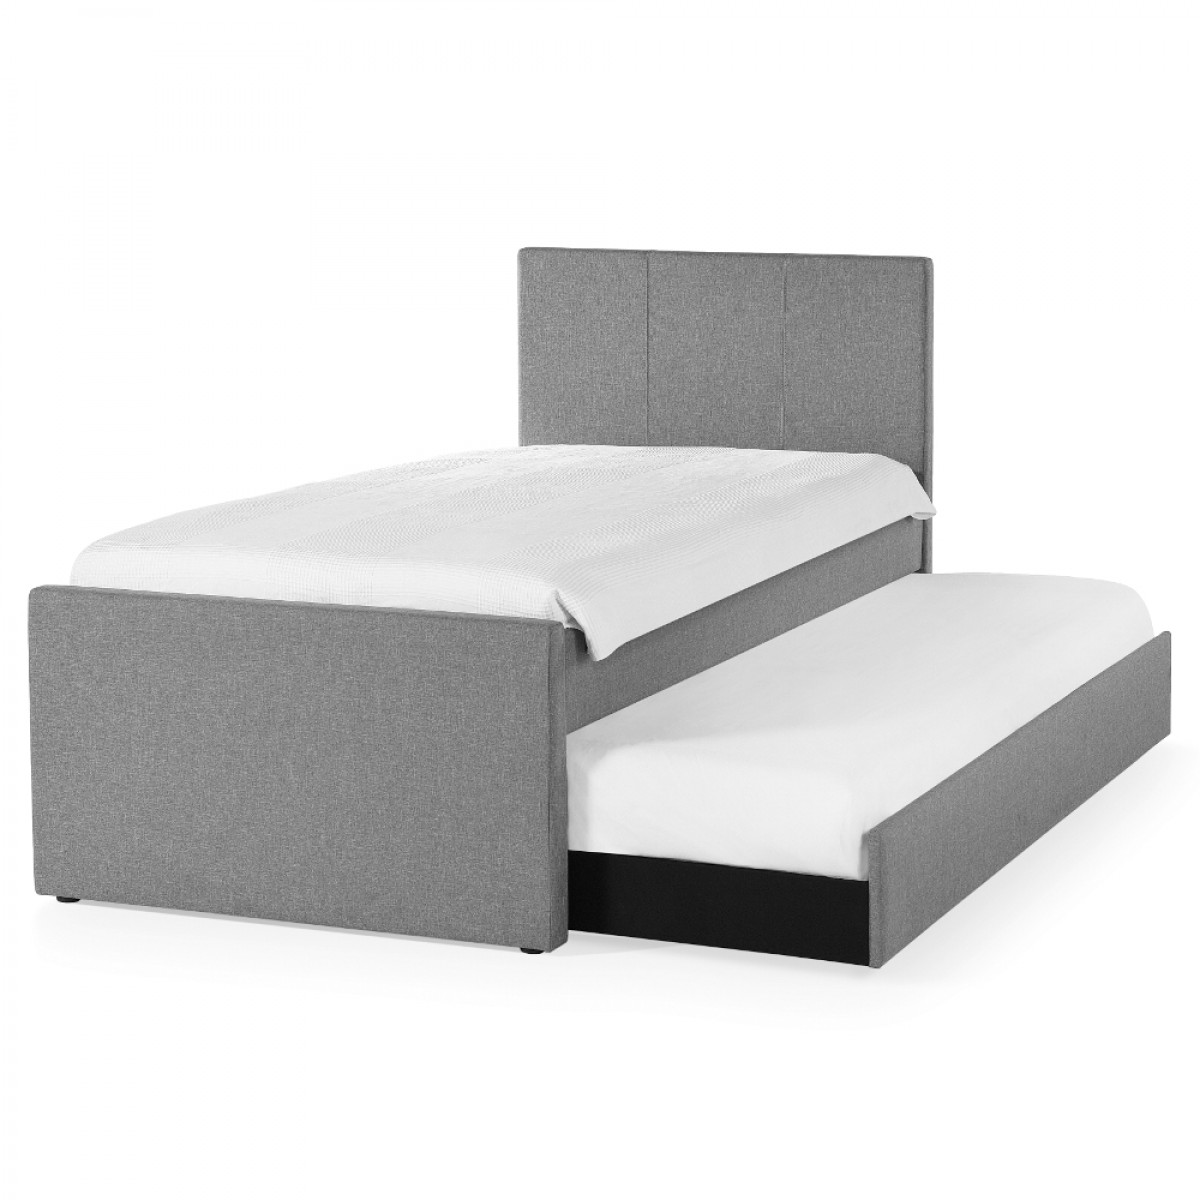 Rialto Light Grey Fabric Guest Bed with Trundle